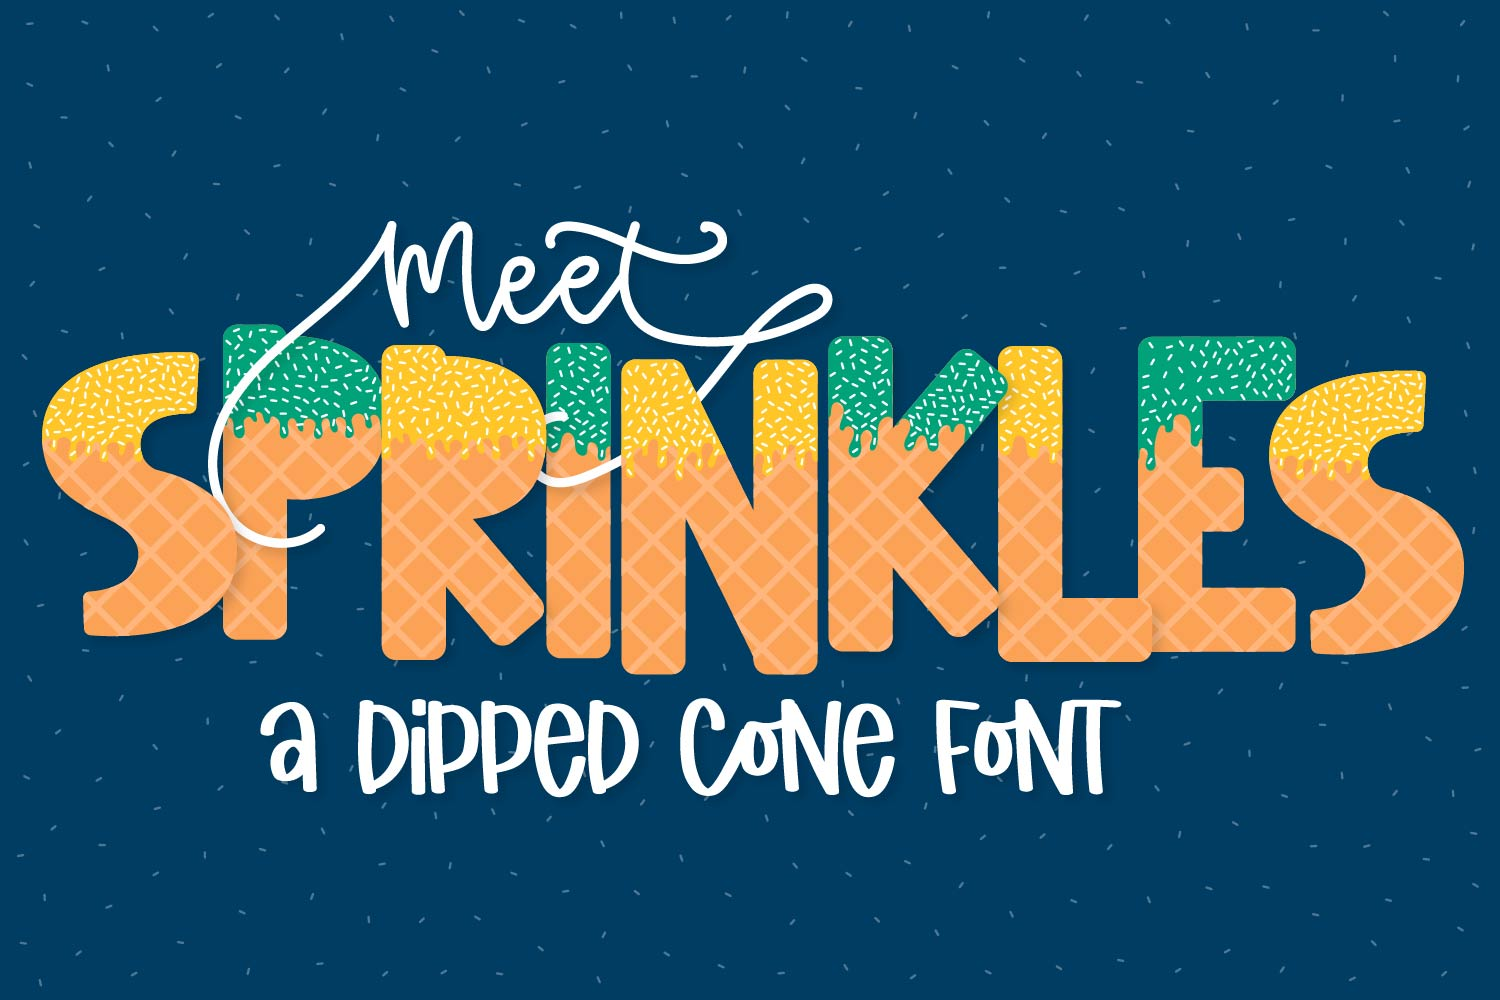 Sprinkles - A Dipped Cone Font For Layering example image 1